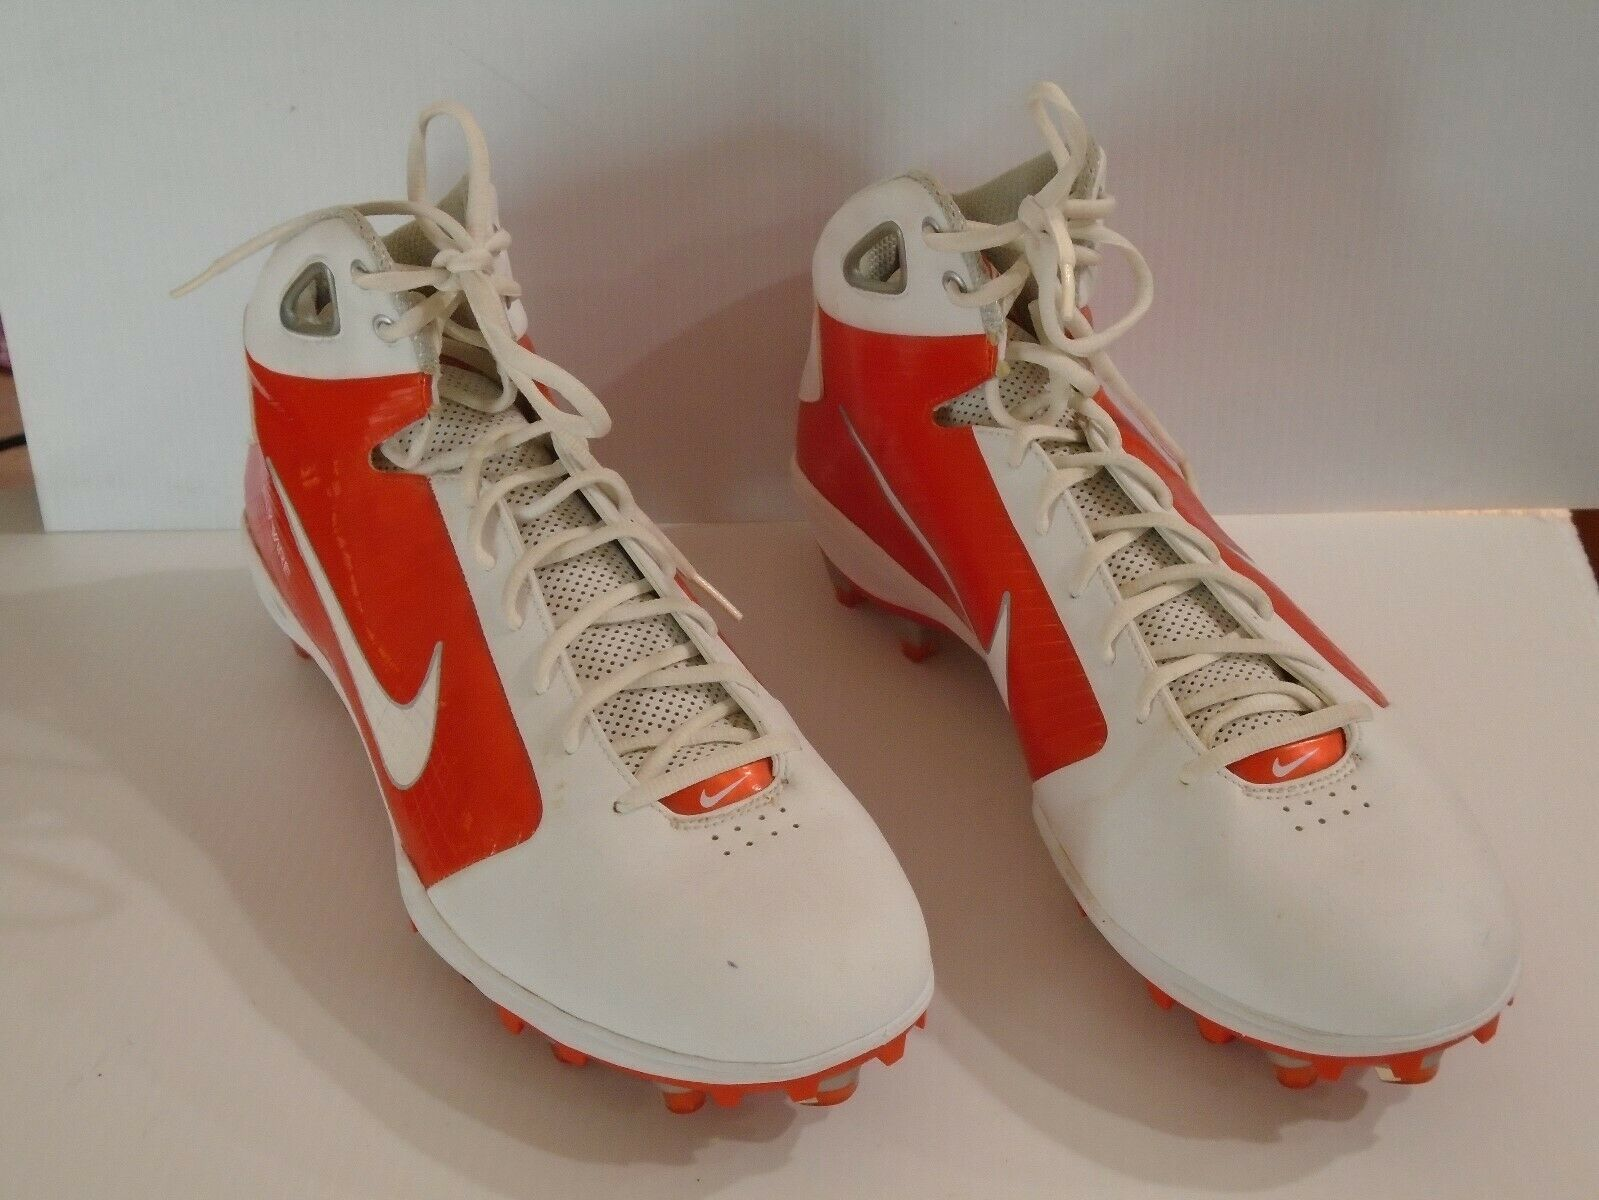 NIKE FLYWIRE Football Cleats shoes Spikes sz 16